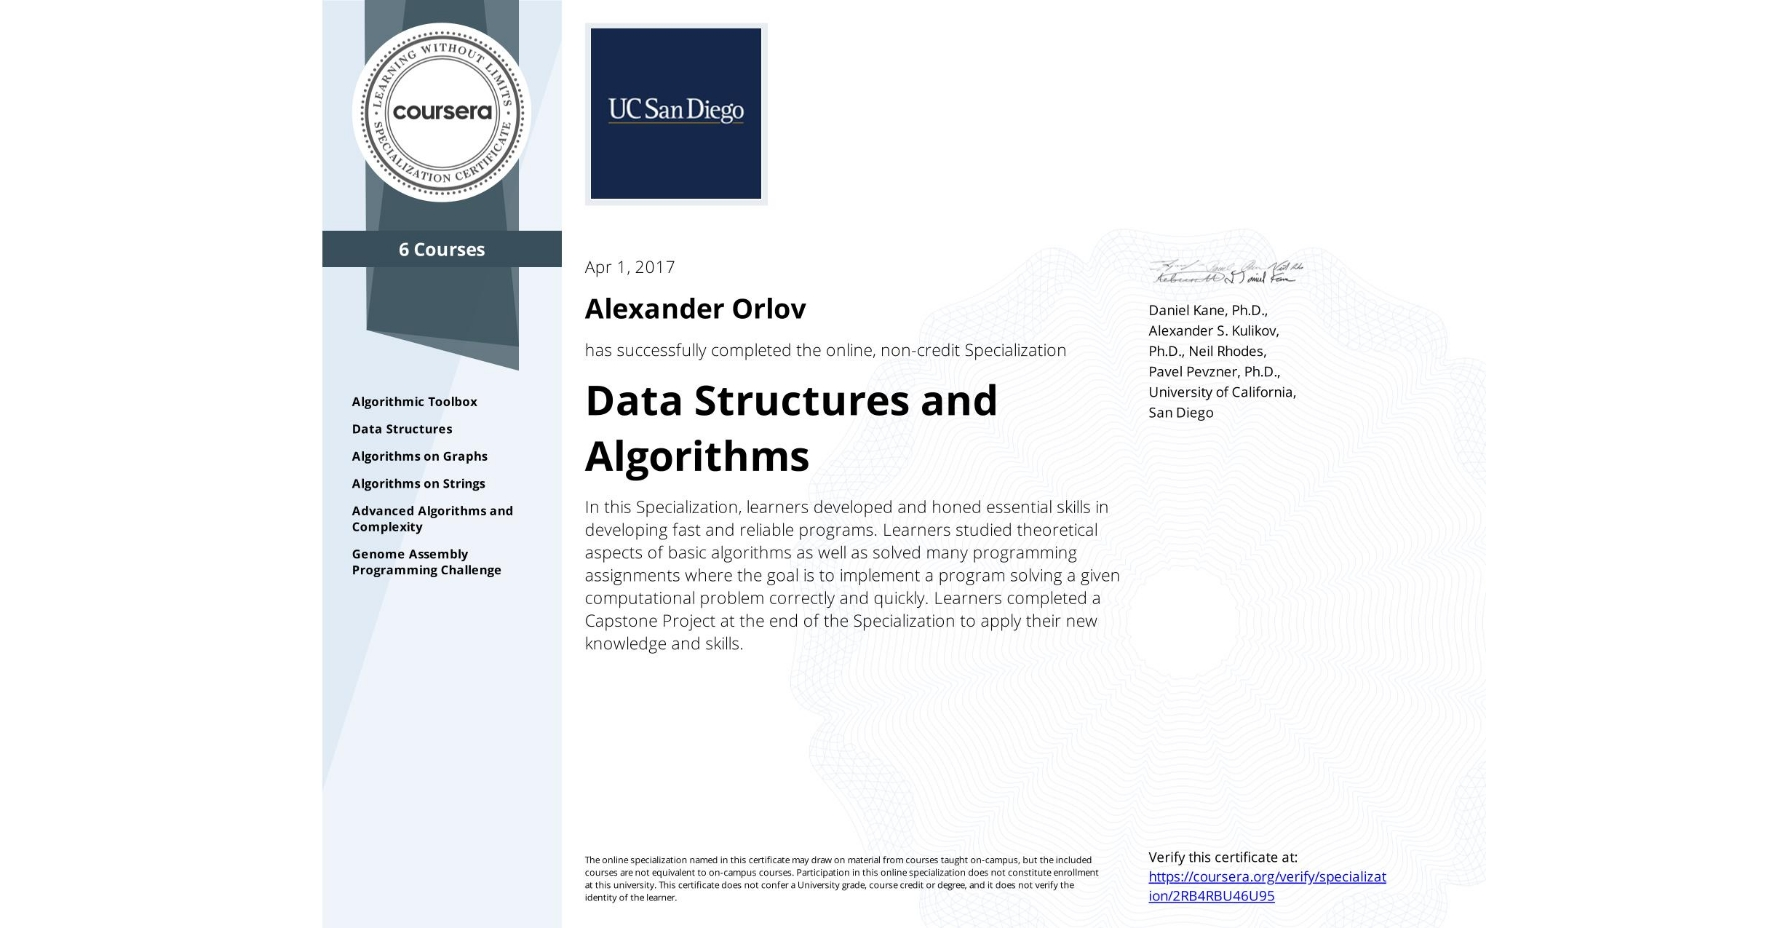 View certificate for Alexander Orlov, Data Structures and Algorithms, offered through Coursera. In this Specialization, learners developed and honed essential skills in developing fast and reliable programs. Learners studied theoretical aspects of basic algorithms as well as solved many programming assignments where the goal is to implement a program solving a given computational problem correctly and quickly. Learners completed a Capstone Project at the end of the Specialization to apply their new knowledge and skills.